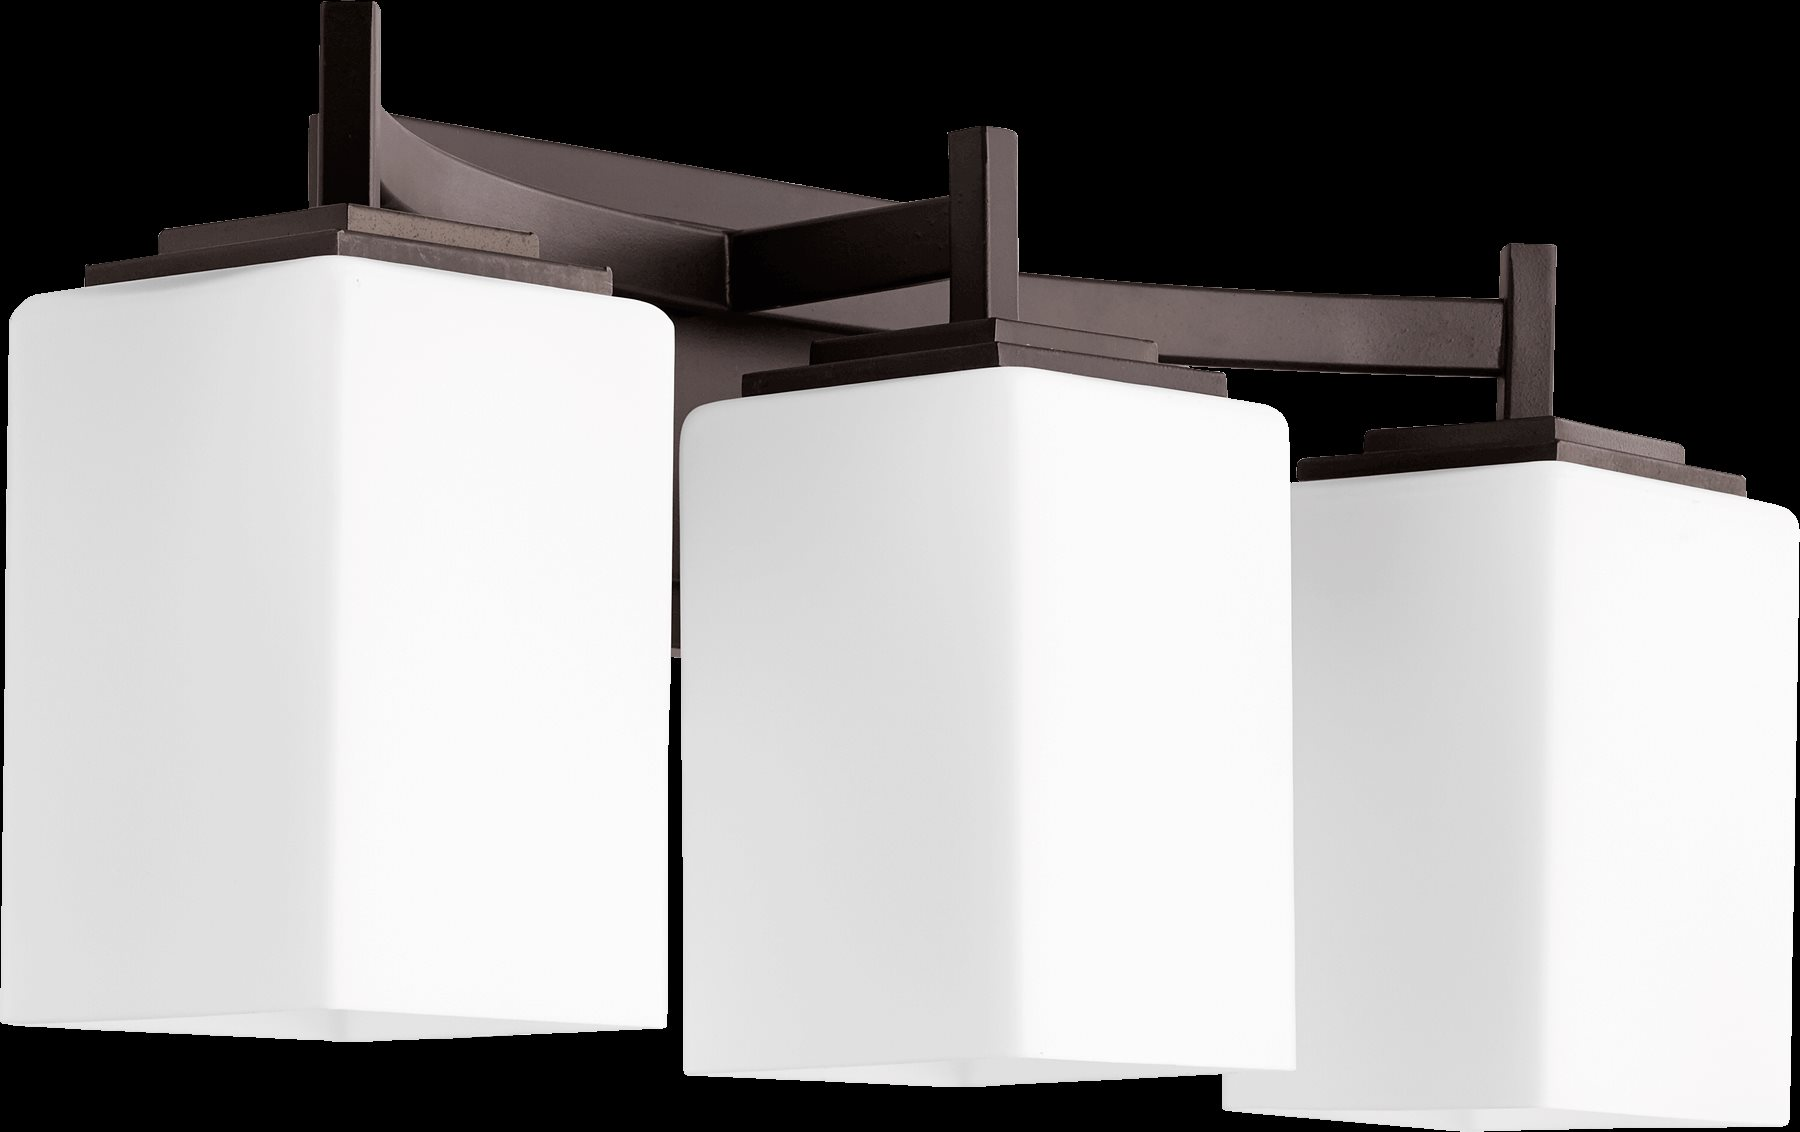 Quorum Lighting 5084-3-86 Delta Modern / Contemporary Bathroom / Vanity Light QR-5084-3-86